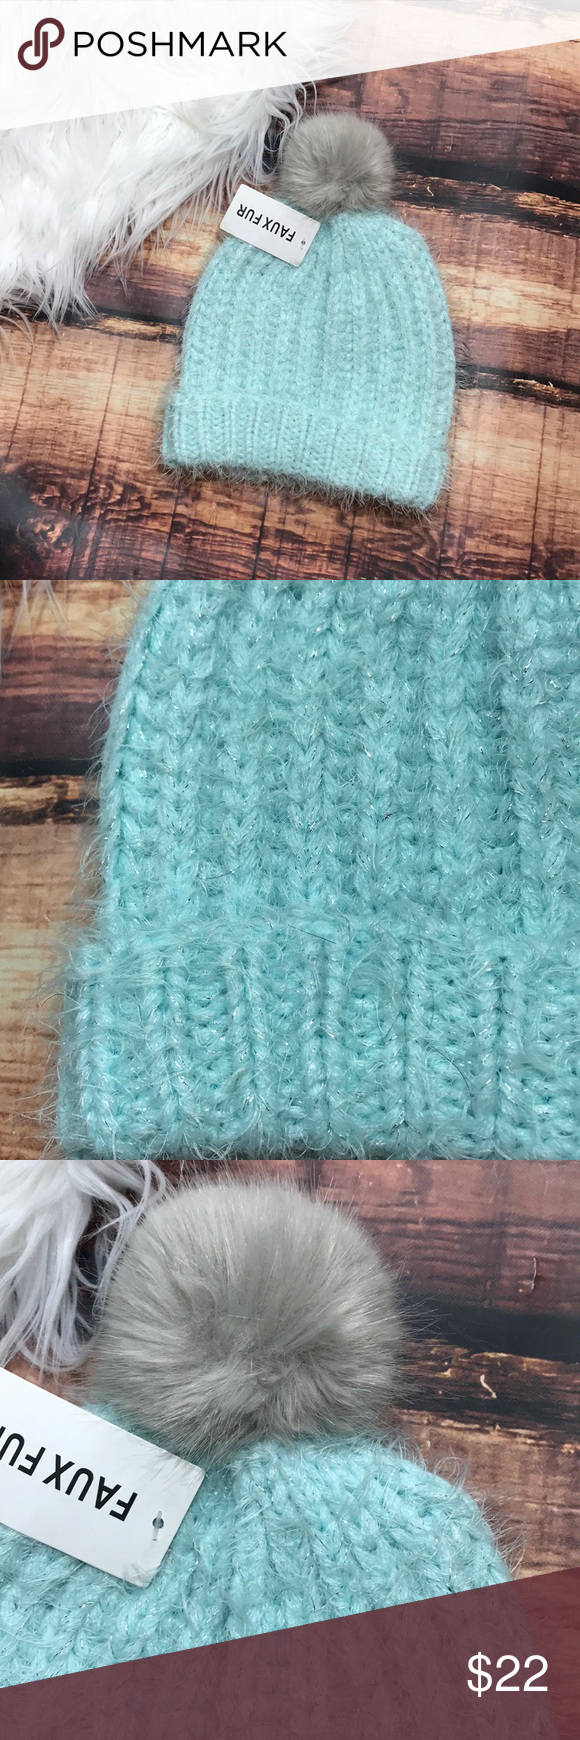 3903093fd77 Mint Tiffany Blue Sparkly PomPom Beanie Winter Hat Cute and sparkly with a  furry puff ball